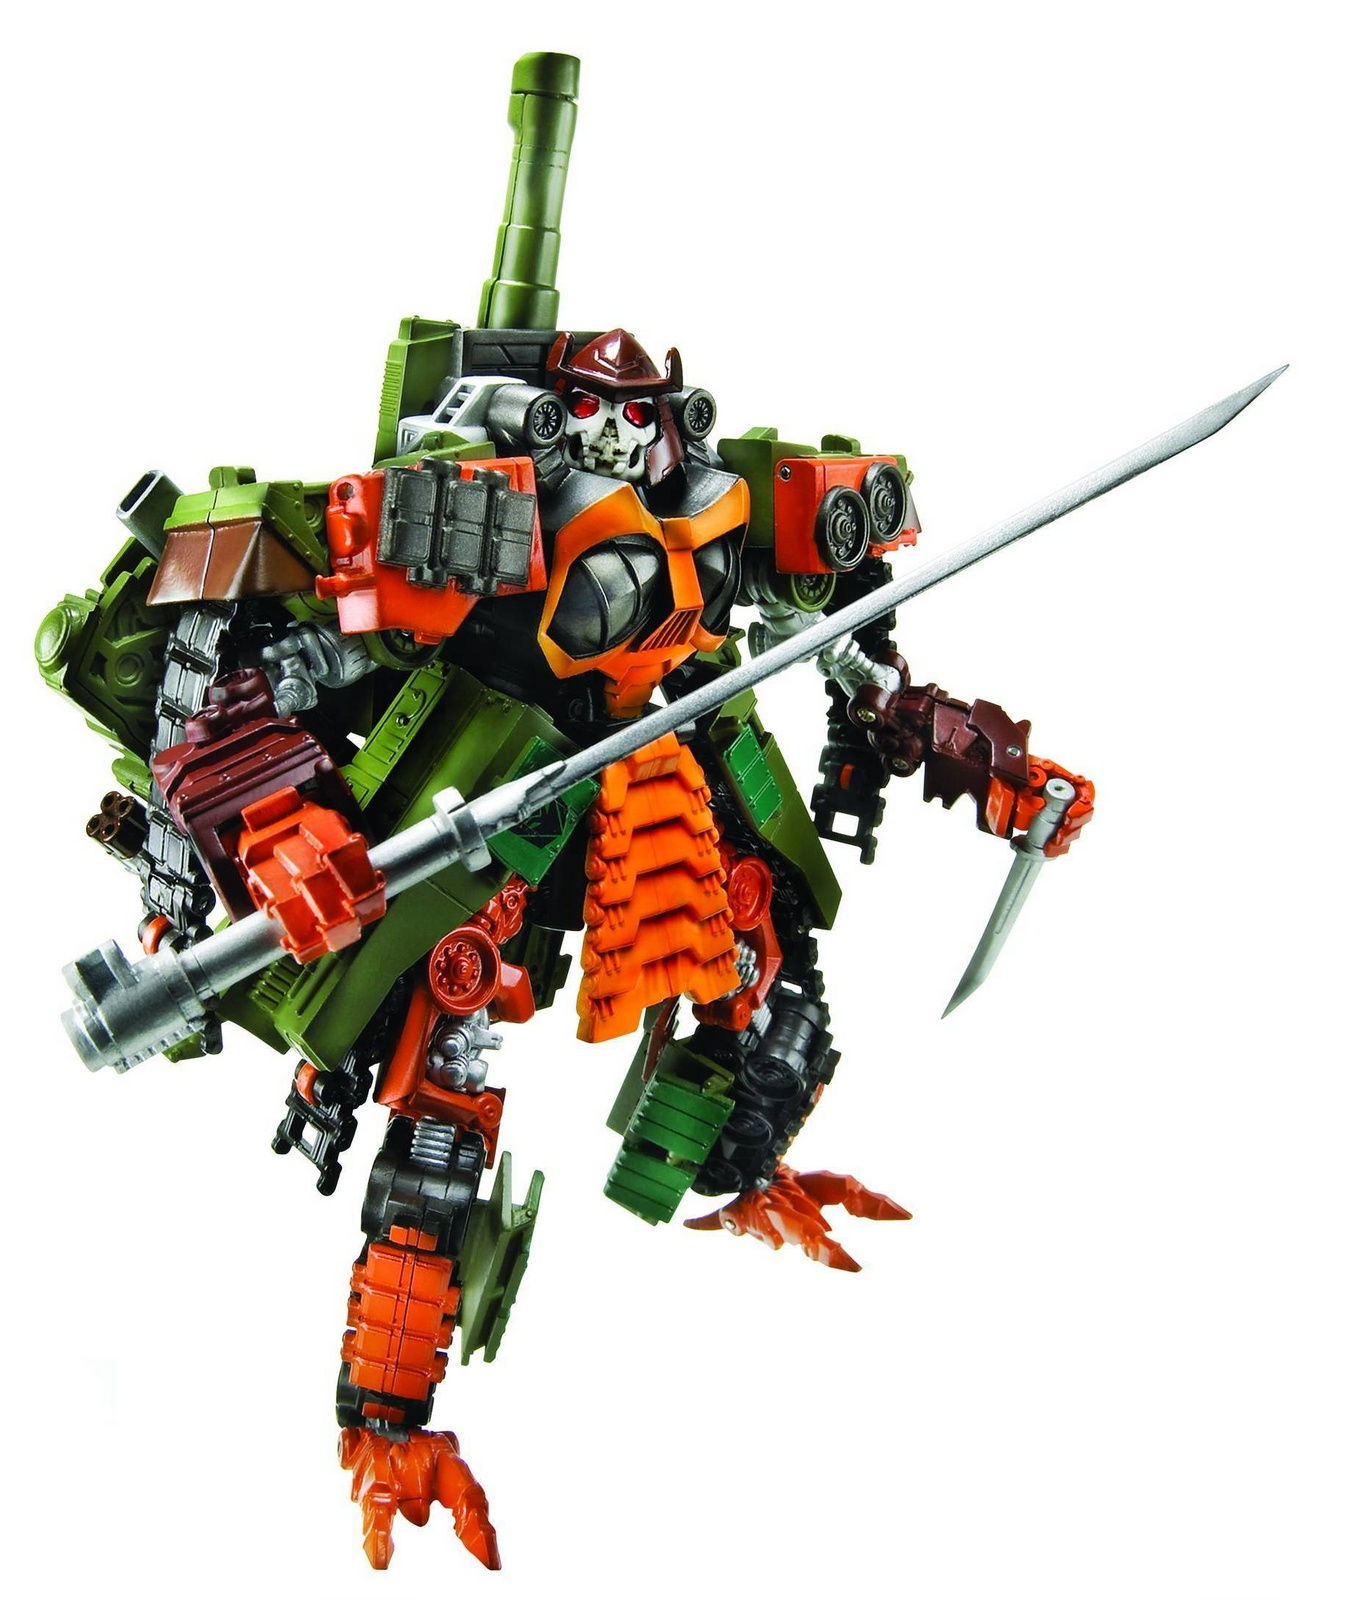 Decepticon Bludgeon blugrob